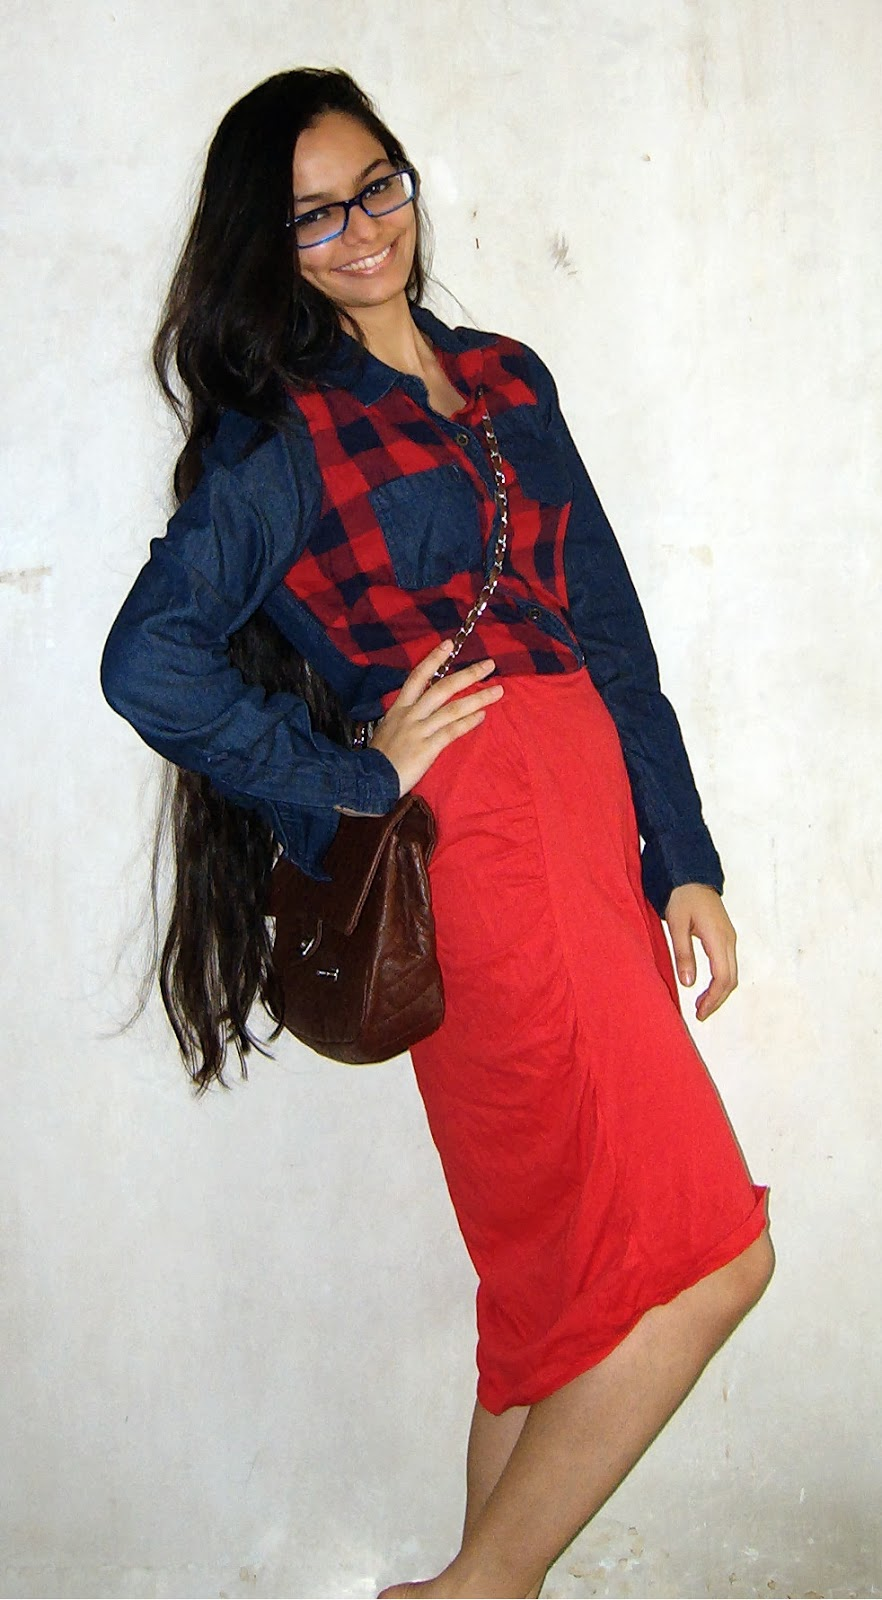 cross body bag, red skirt, denim and tartan shirt, plaid shirt, mumbai streetstyle